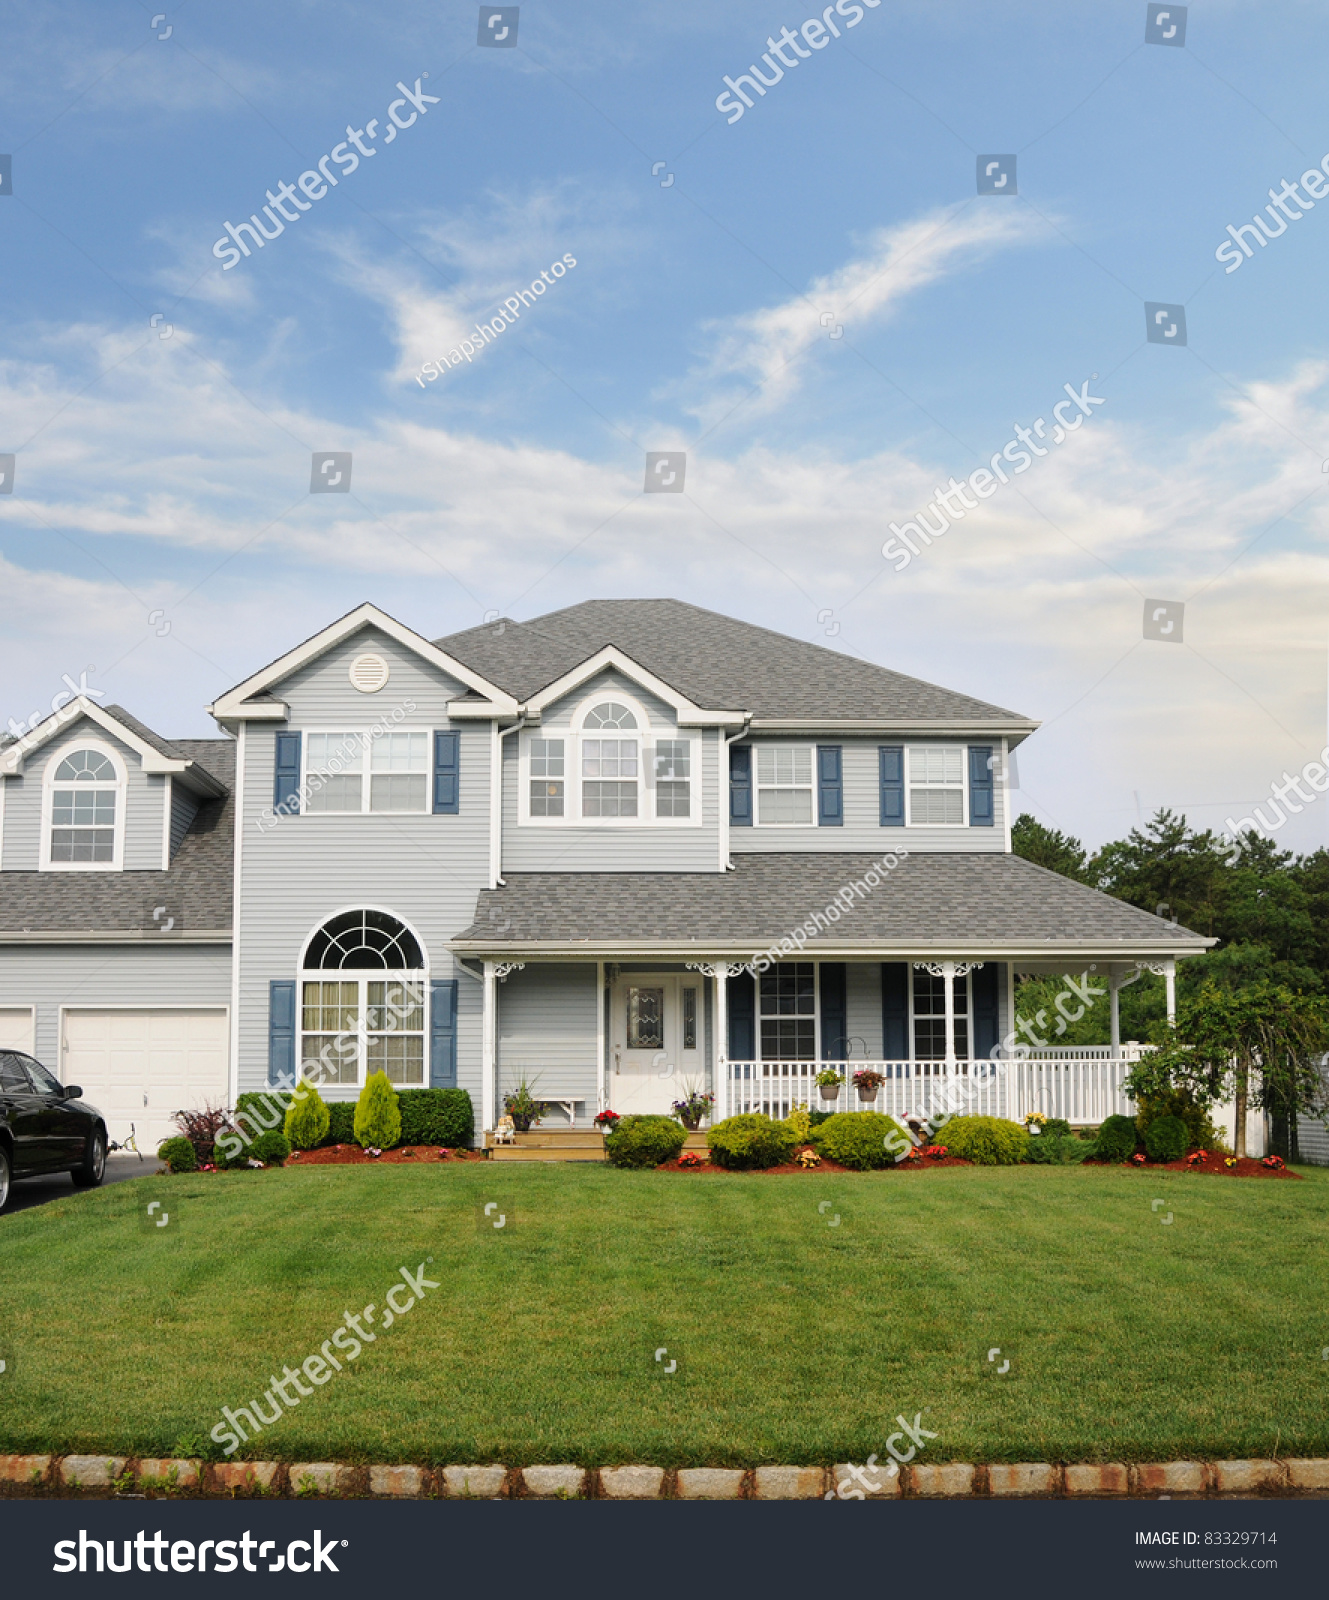 Suburban Two Story Home With Porch Landscaped Front Yard